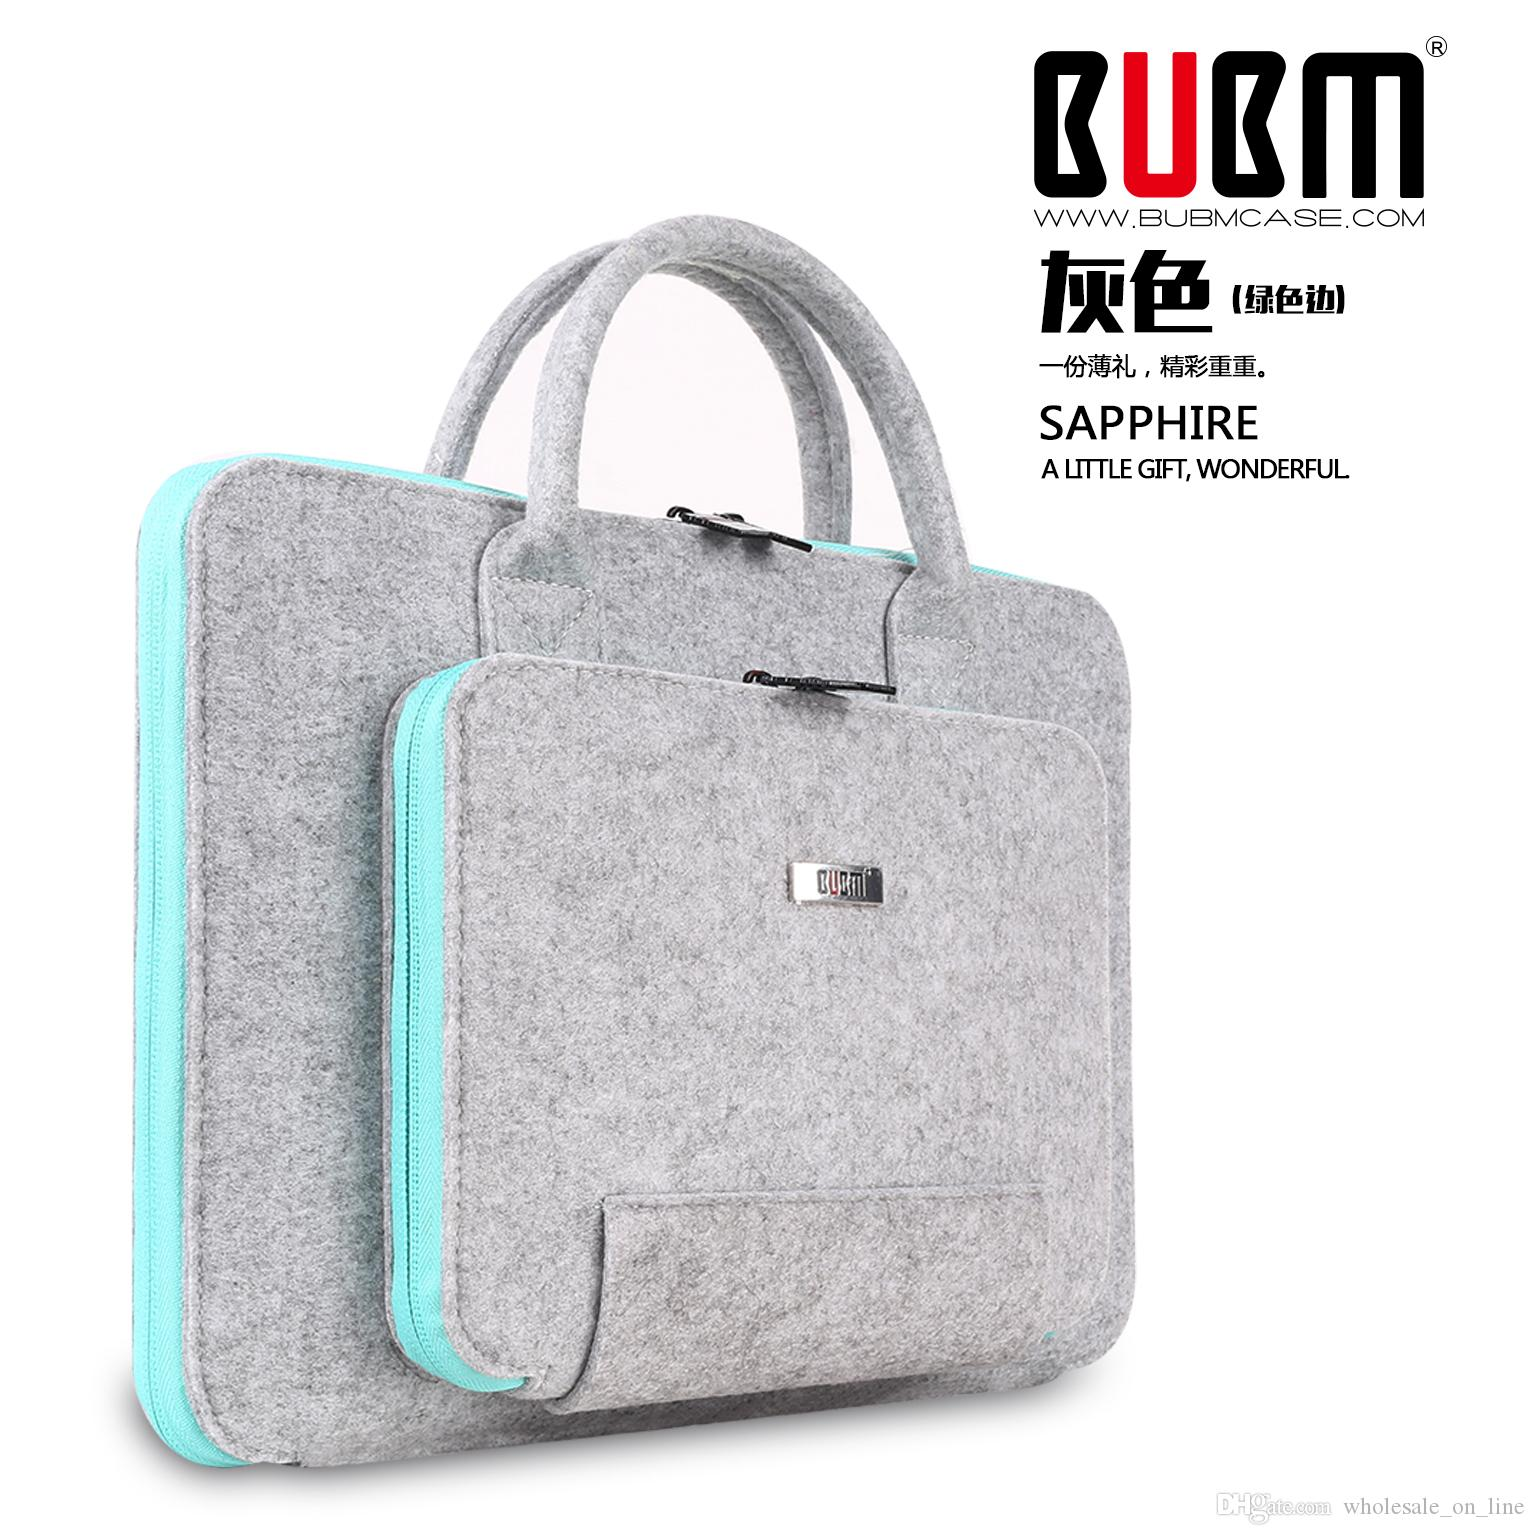 fbca3b7c3939 BUBM fashion men women Laptop Bags   Cases message meeting work leather bags  for macbook air retina pro 11 13 15 free shipping